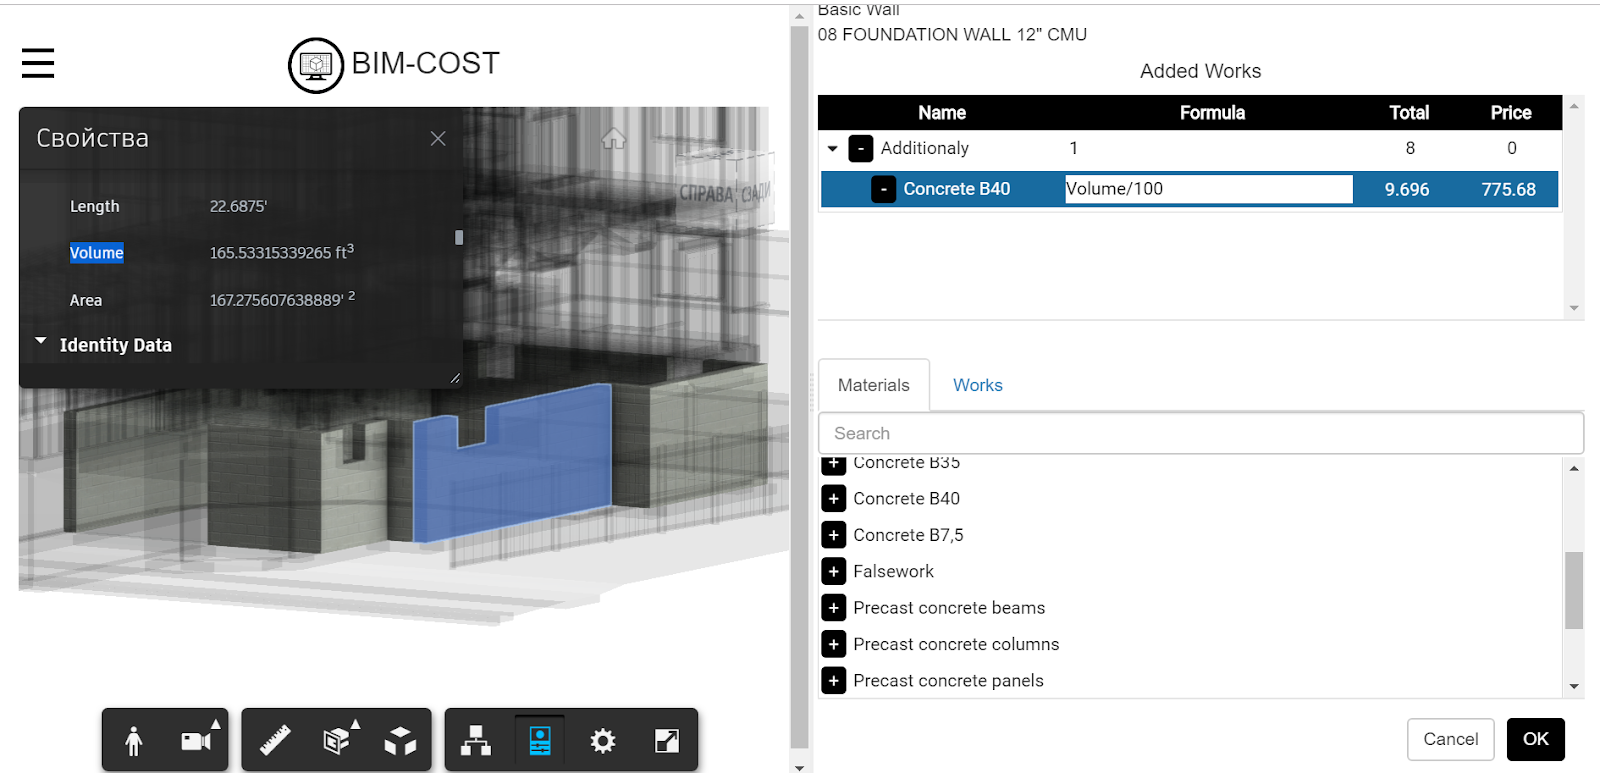 Revit Add-Ons: Free BIM-COST – Cost Estimation of Revit Models in